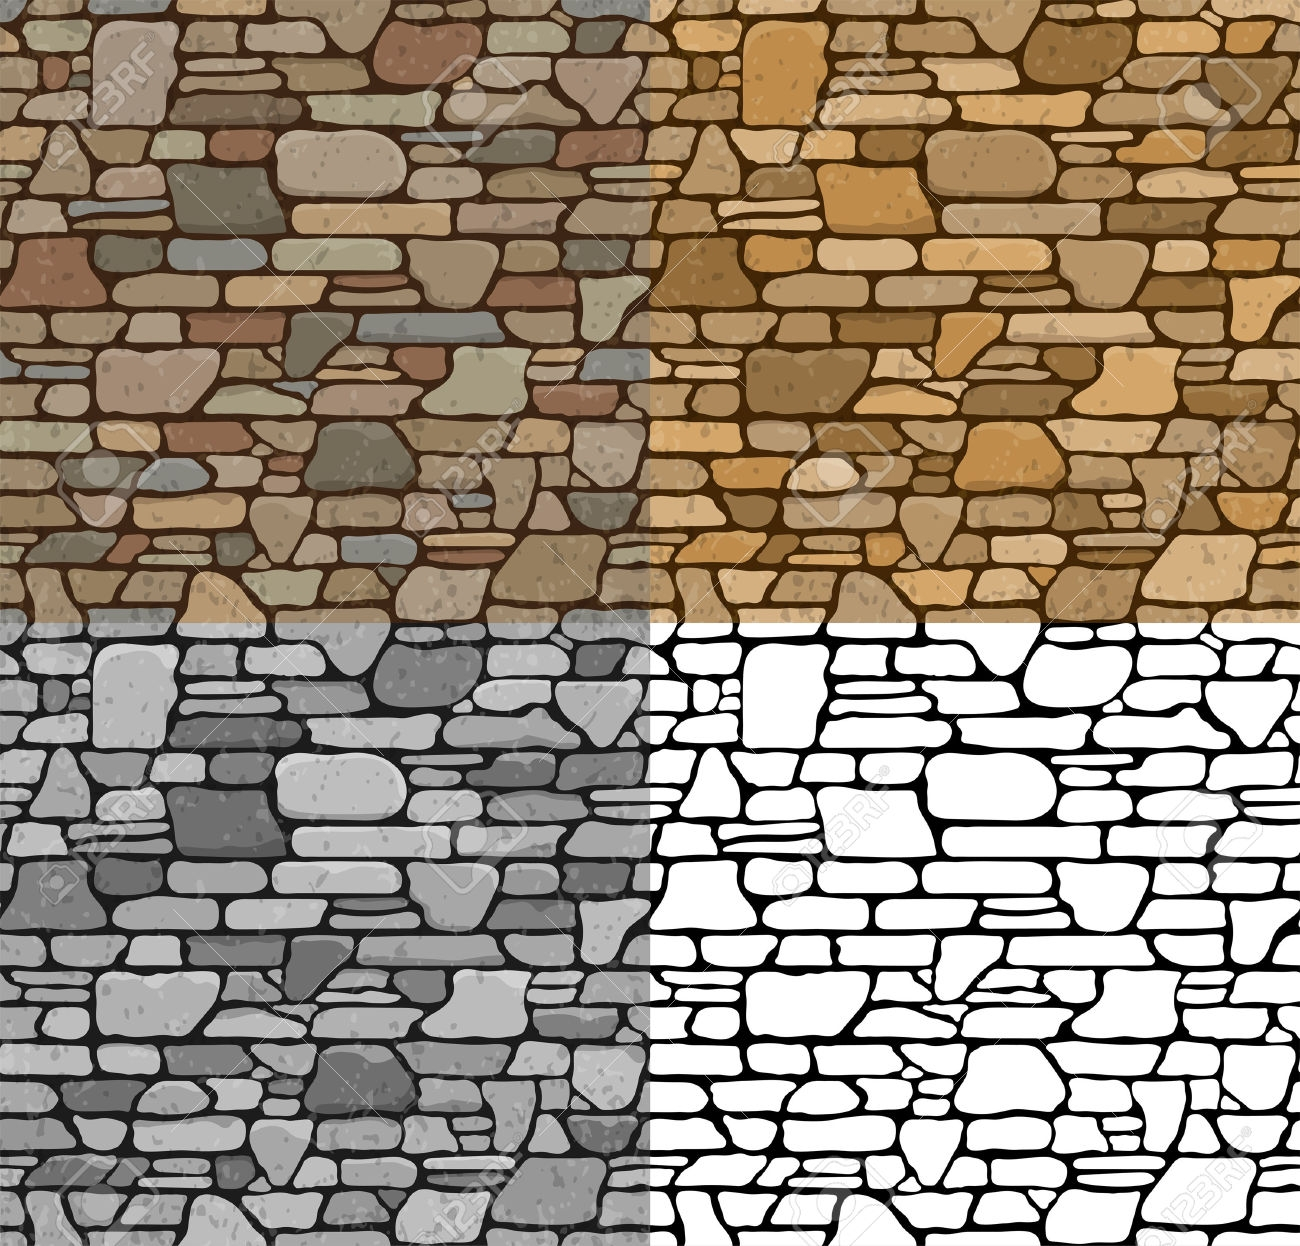 png royalty free download Stone wall clipart. Clip art x free